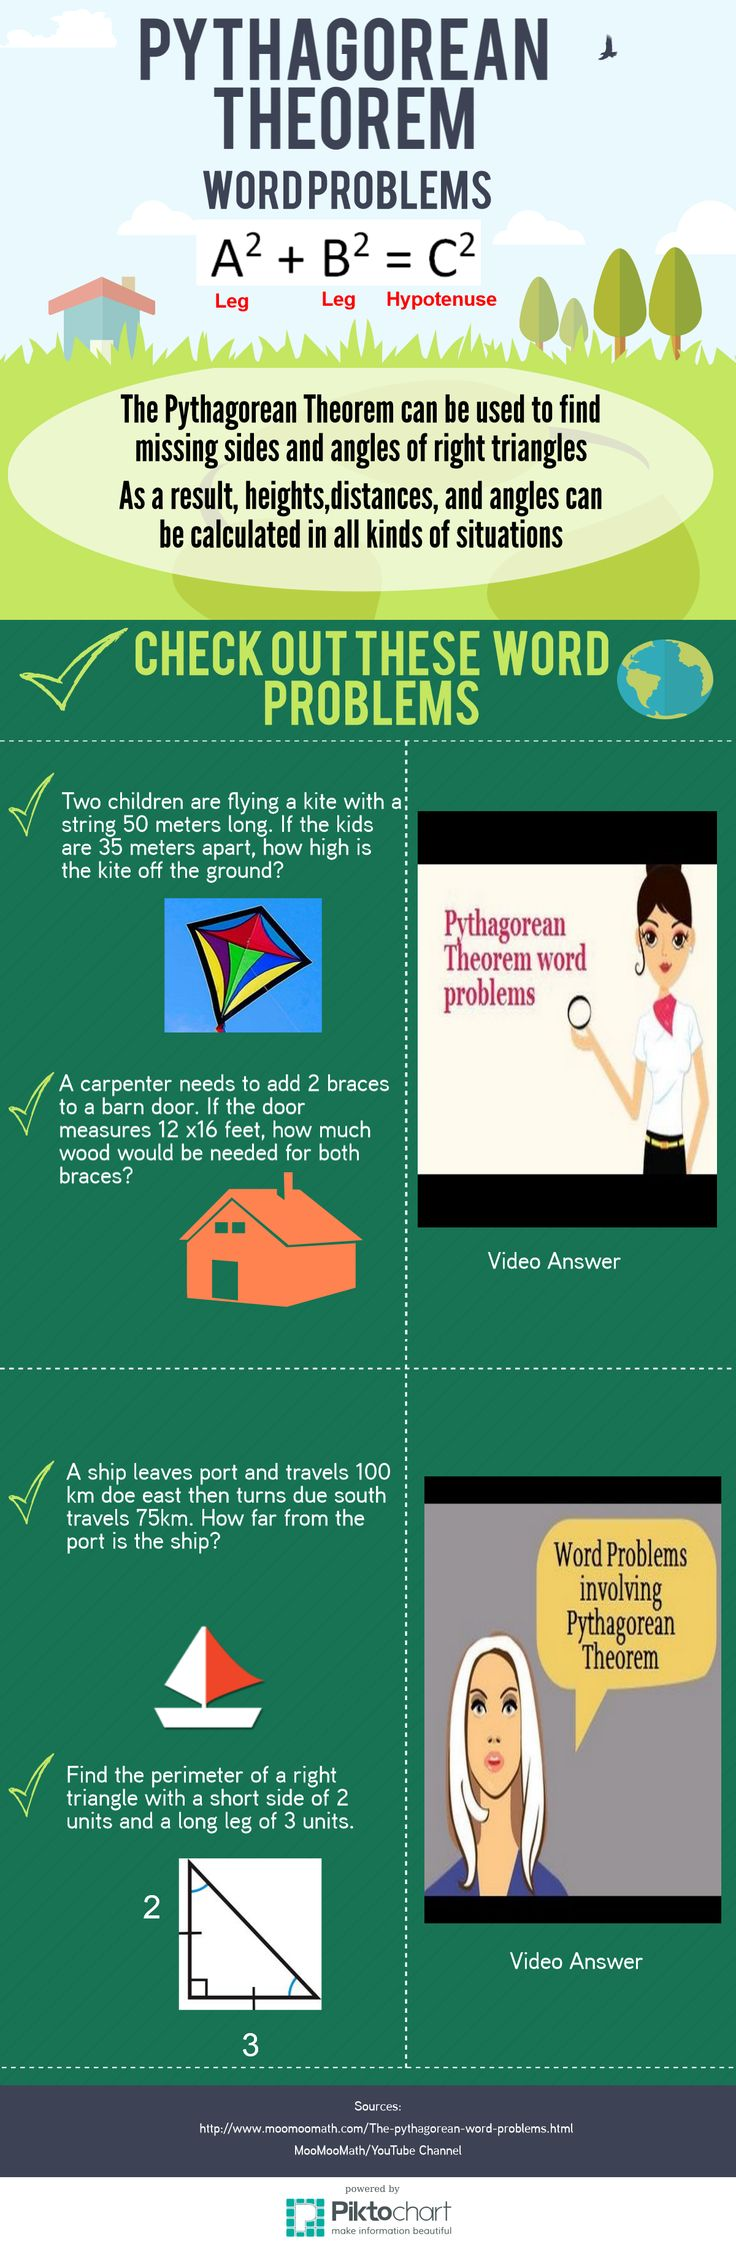 The Pythagorean Theorem Can Be Used In Geometry To Solve Many Word Problems